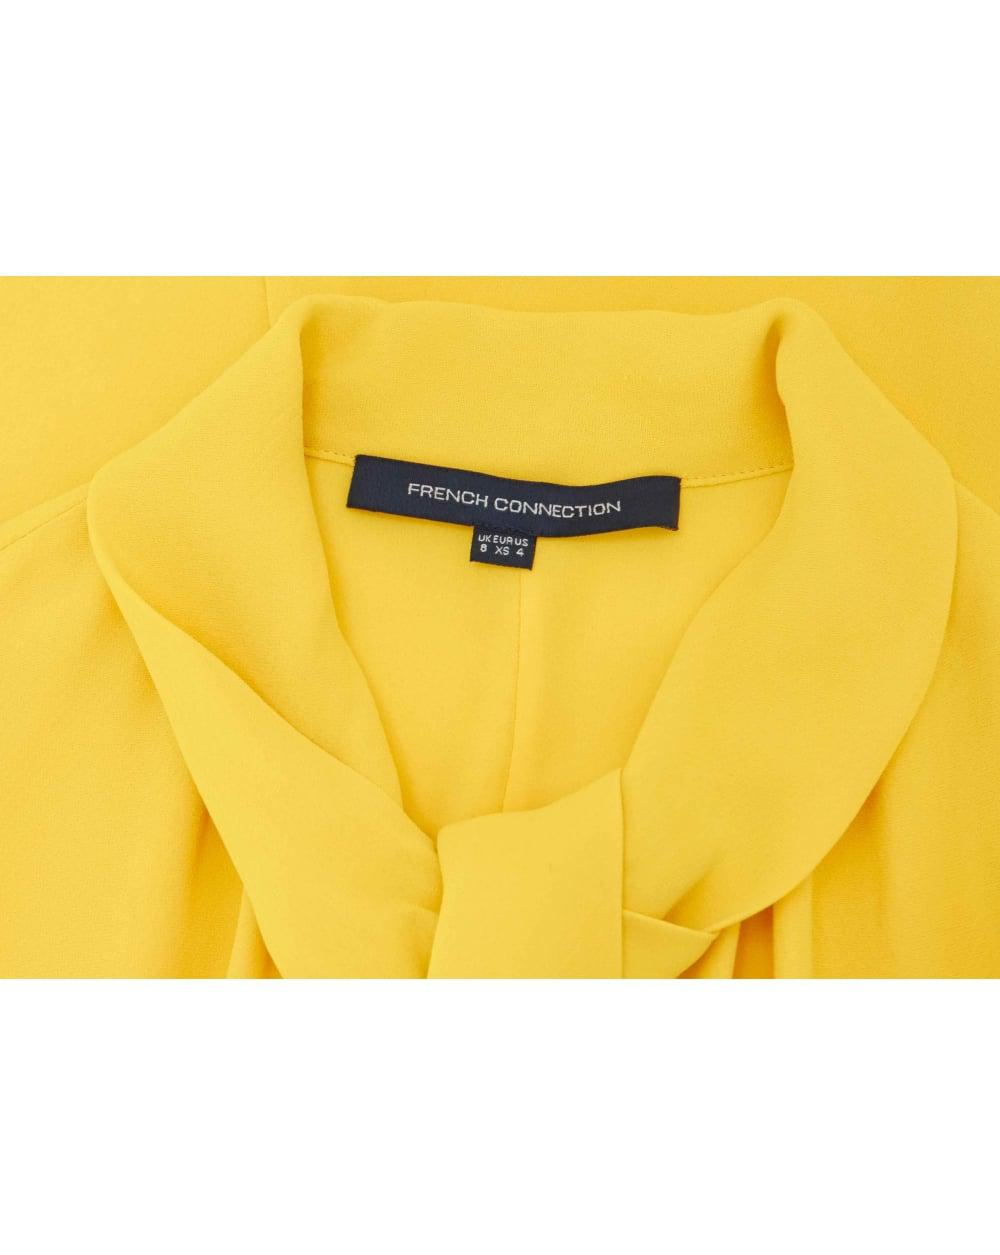 e6f78e58f40 French Connection Arimi Crepe Tie Neck Shirt Dress in Yellow - Lyst